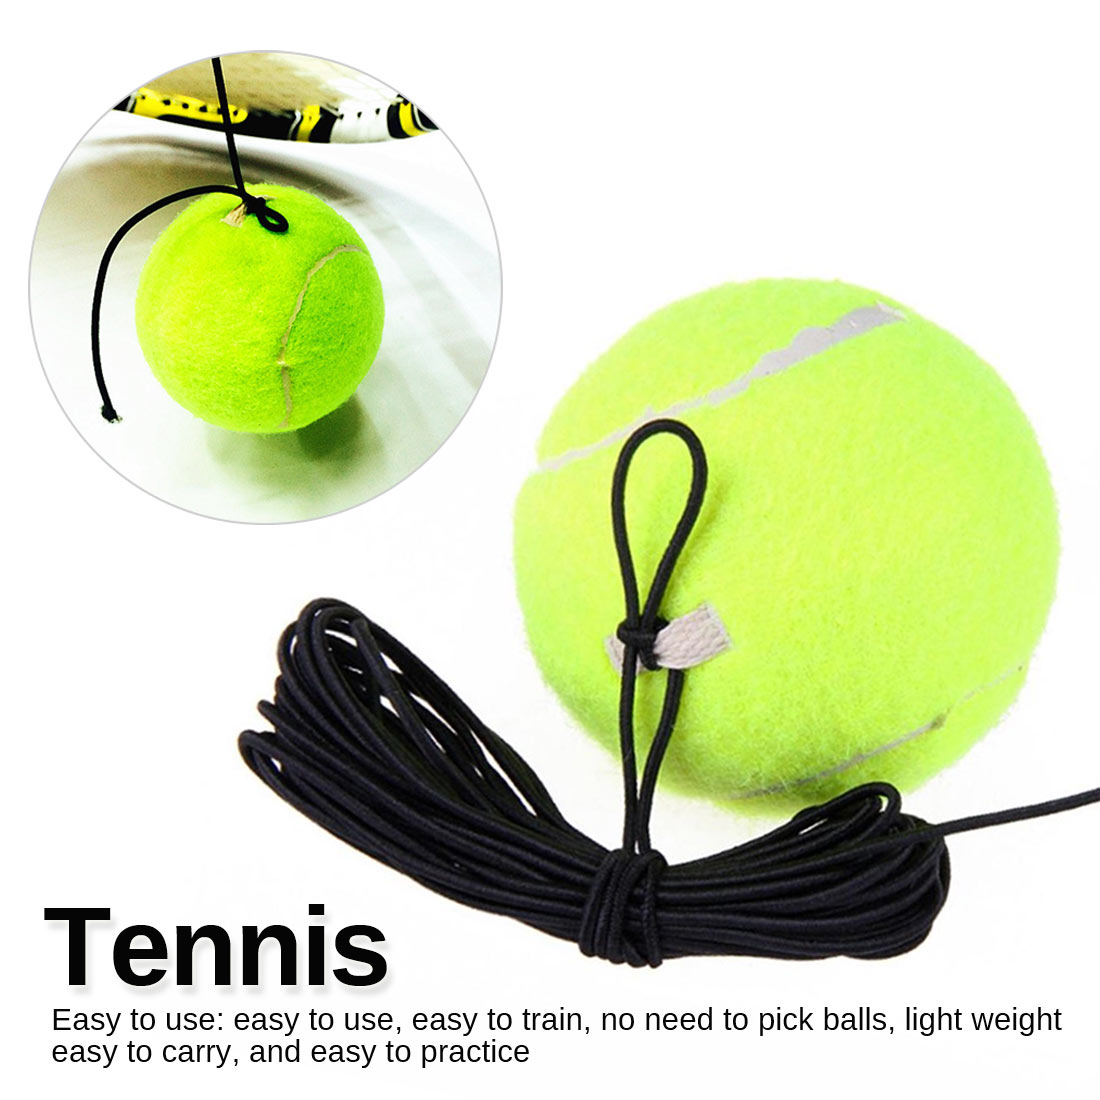 Tennis Board Exercise Ball Tennis Self-study Rebound Ball Tennis Trainer Floor Tennis Training Main Tool Exercise